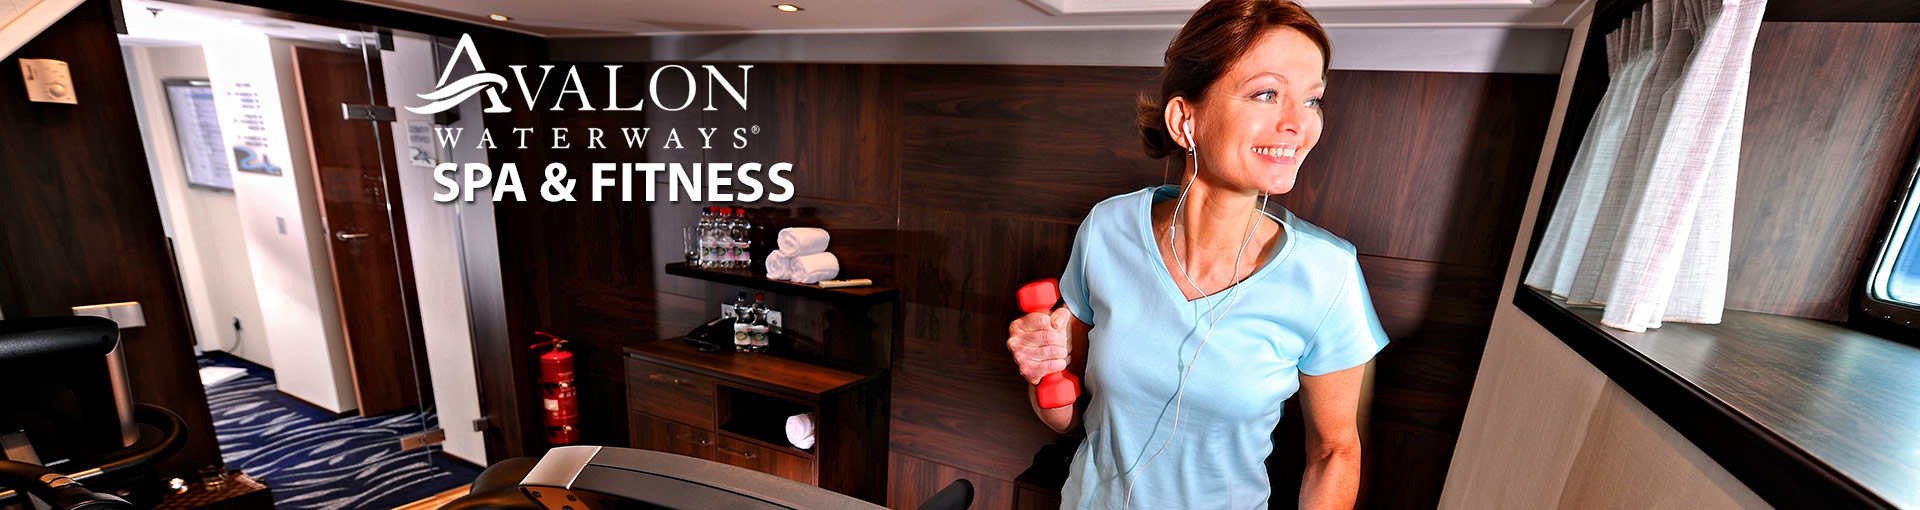 Avalon Waterways Spa & Fitness